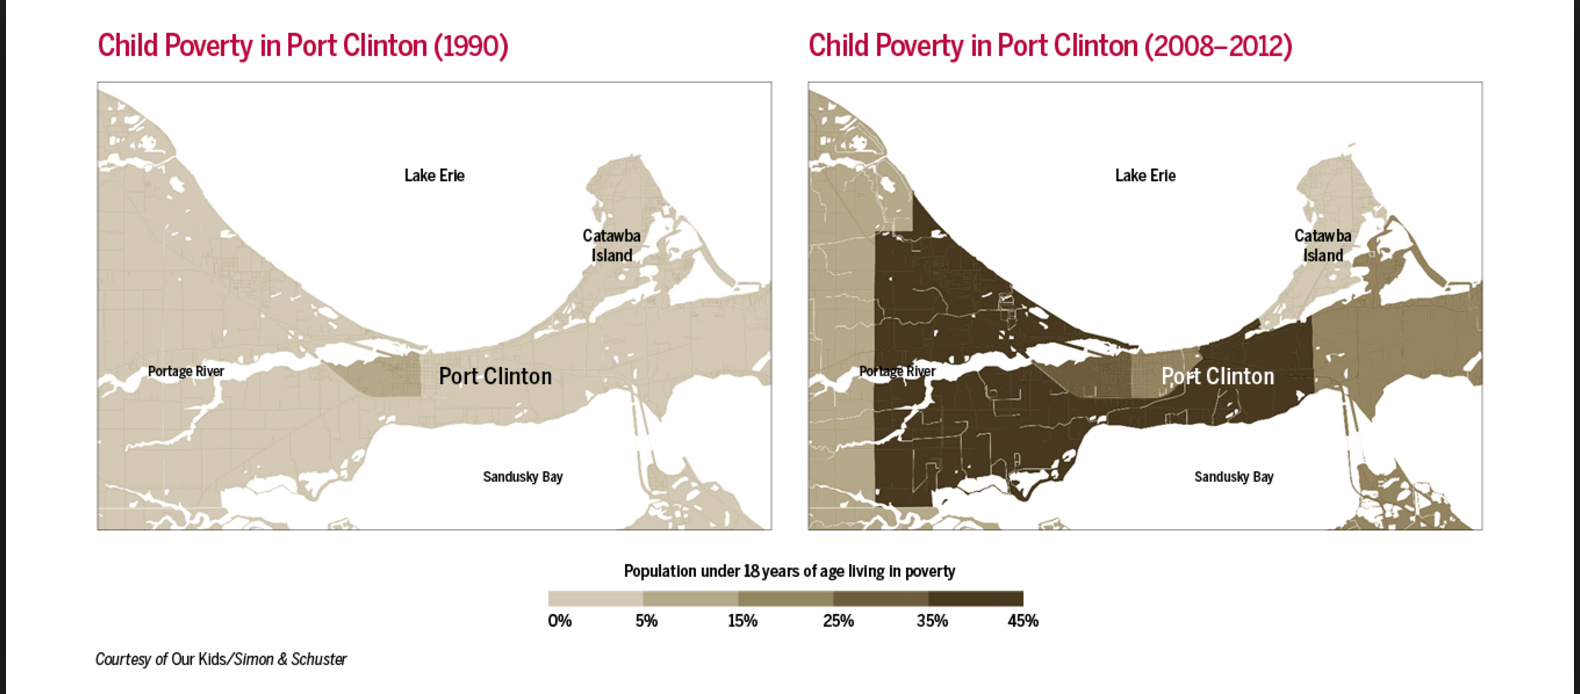 Comparing kids in Port Clinton (Putnam's hometown) in the 1950s with Port Clinton kids today. The opportunity gap has widened dramatically, partly because affluent kids now enjoy more advantages than less affluent kids then, Putnam writes, but mostly because poor kids now are in much worse shape than their counterparts then (image courtesy Simon and Schuster).